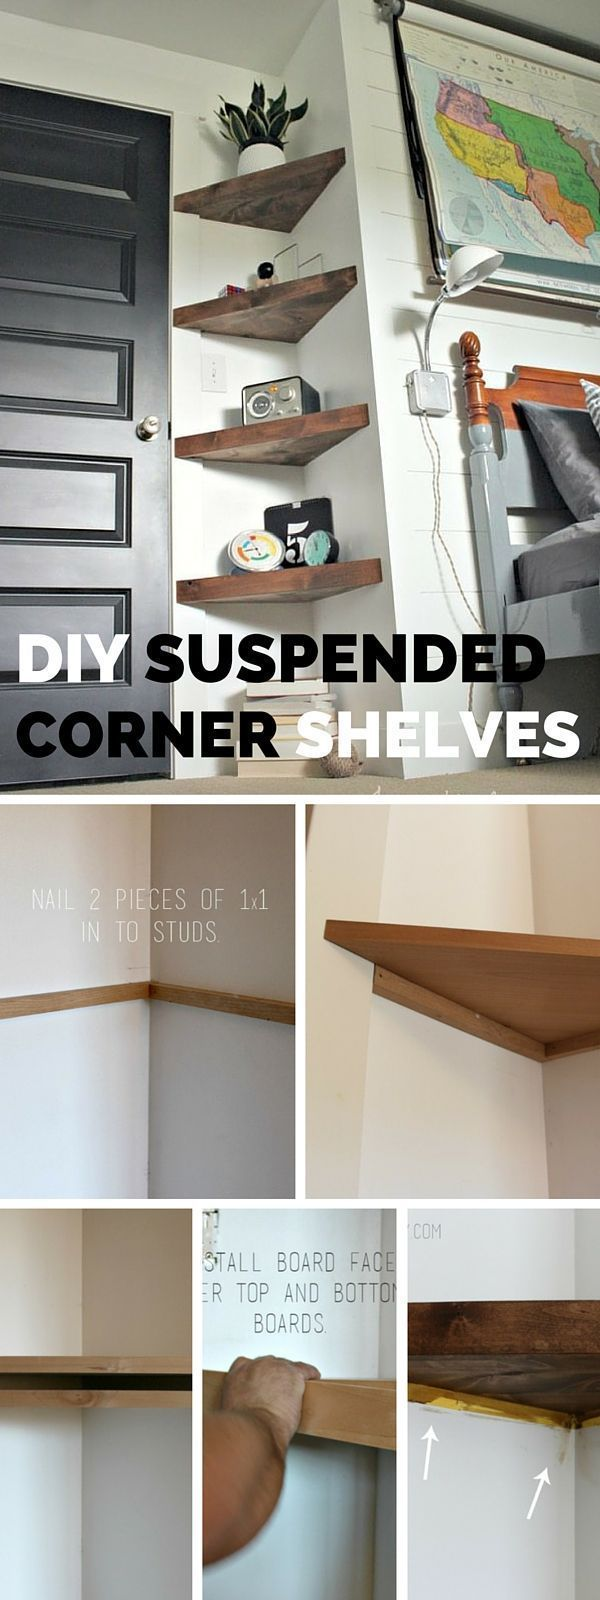 Awesome 12 Simply Genius Diy Storage Solutions For A Neat Home By Http Www Top10 Home Decor Ideas Xyz Di Diy Projects For Bedroom Bedroom Diy Easy Home Decor